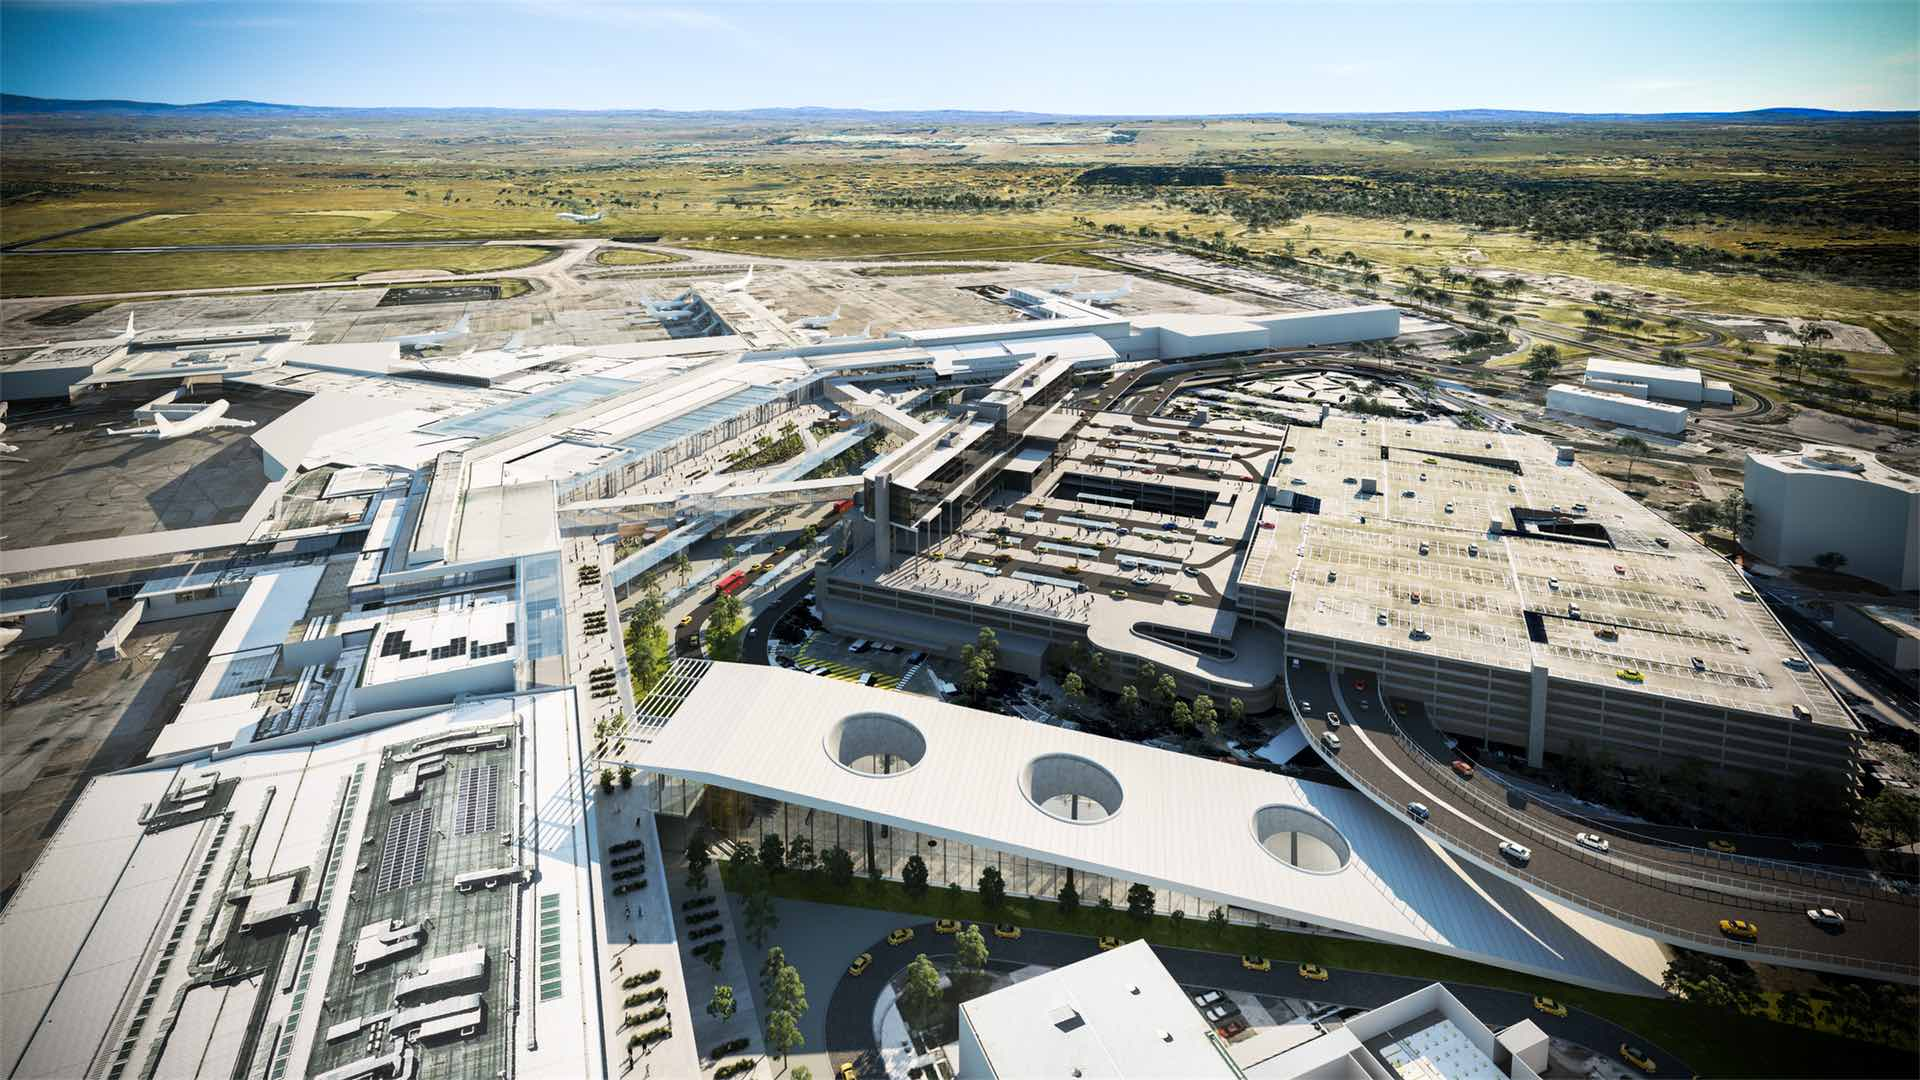 Melbourne Airport Could Score a New Rooftop Bar and Restaurant as Part of Its $500 Million Makeover